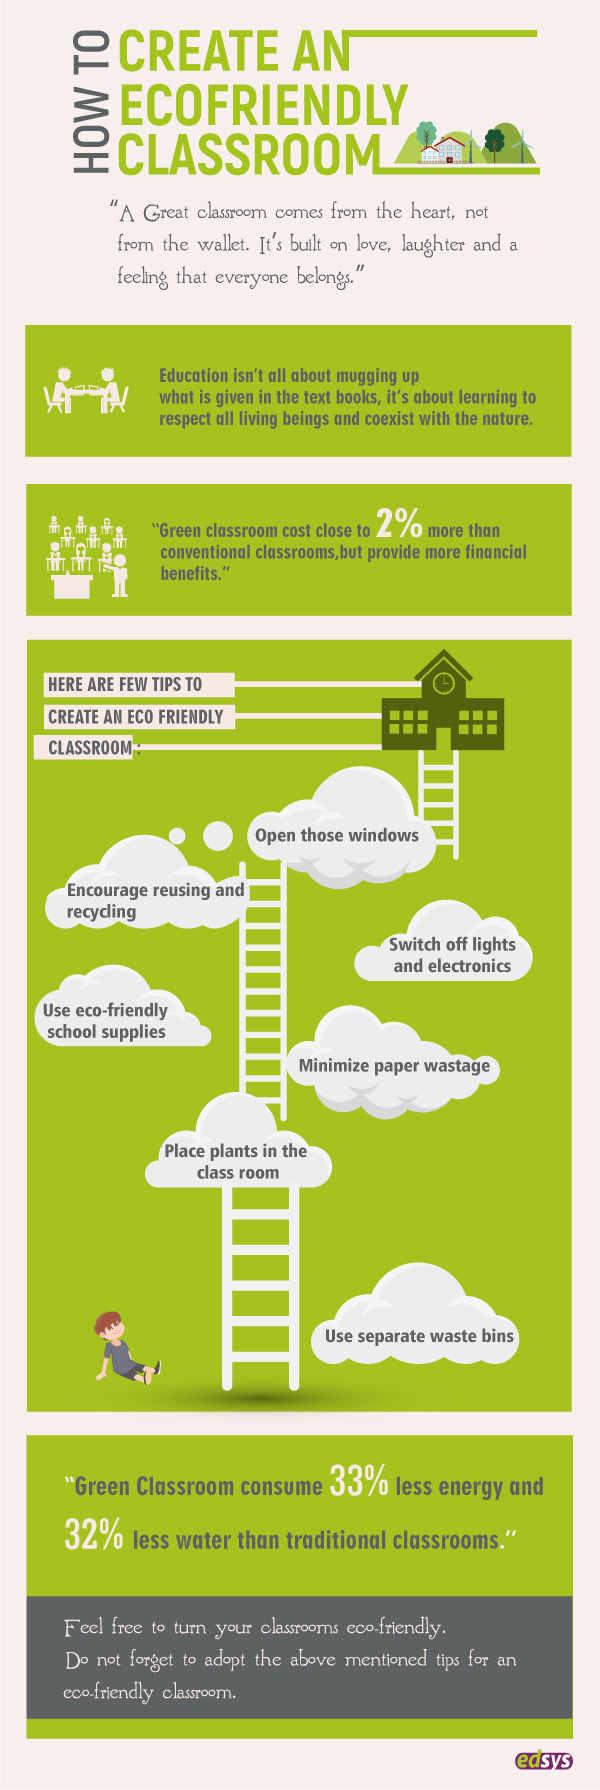 http://www.edsys.in/how-to-create-an-eco-friendly-classroom/